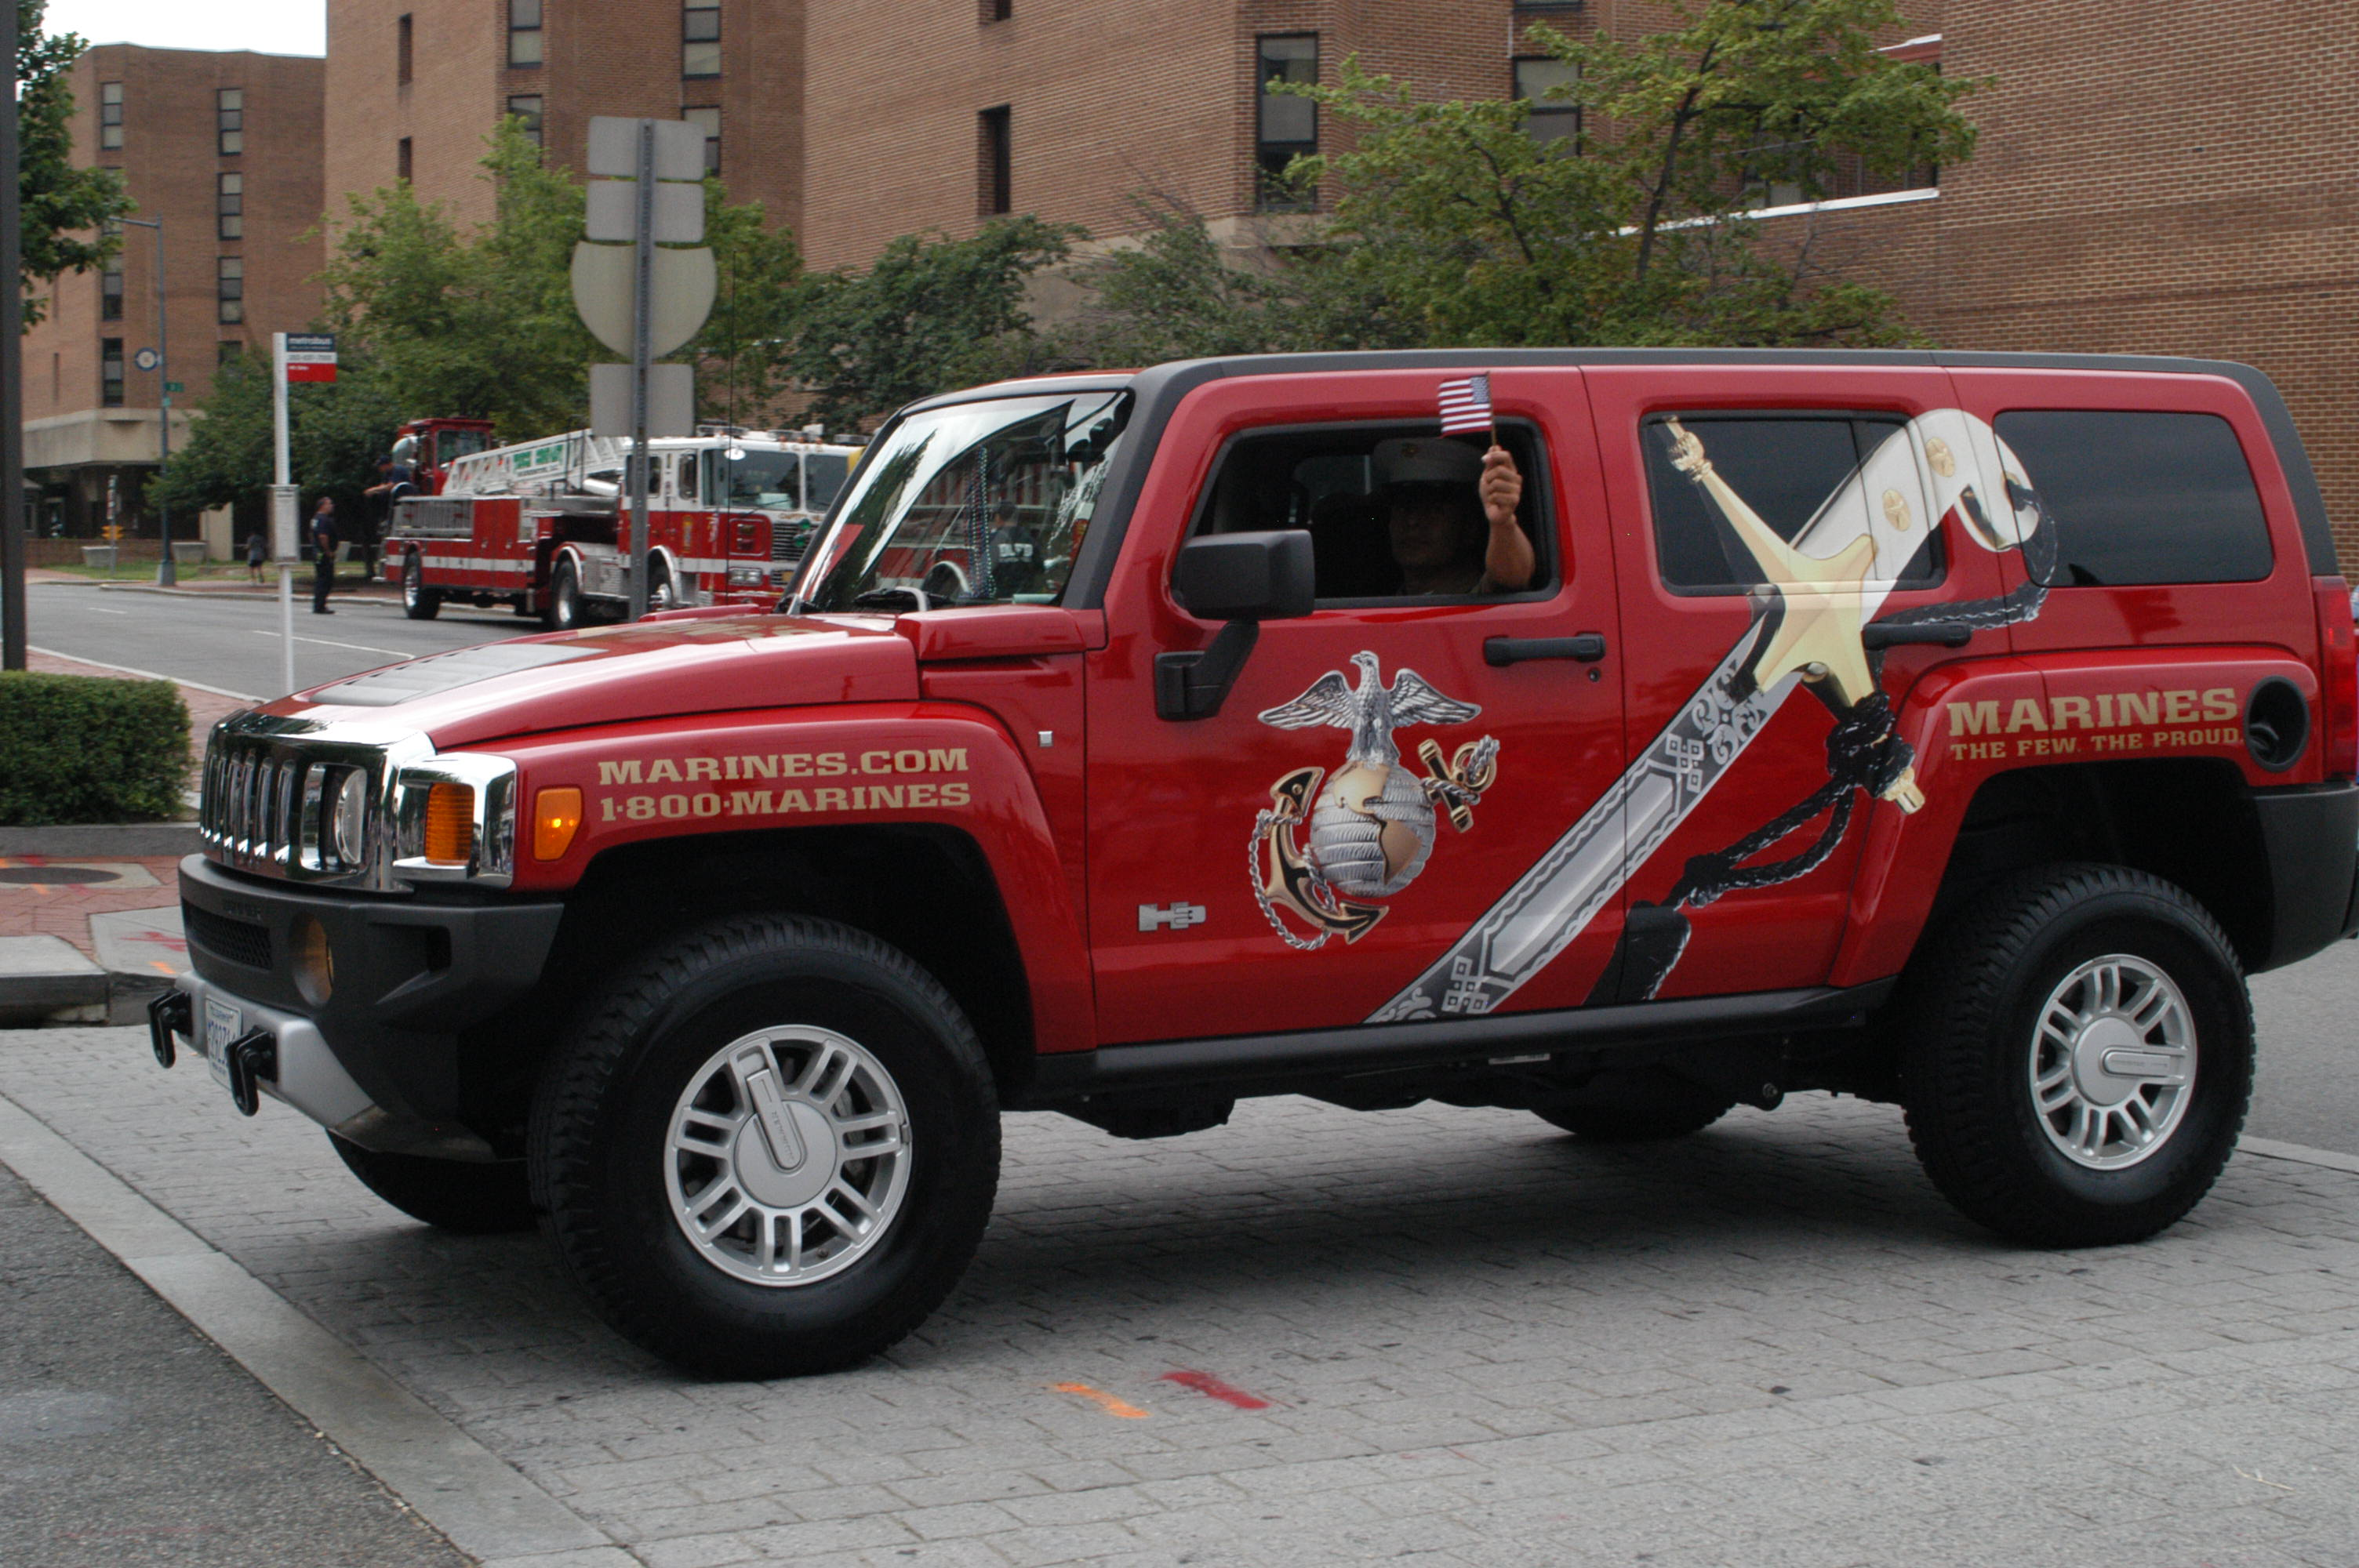 Marines Advertising on Hummers